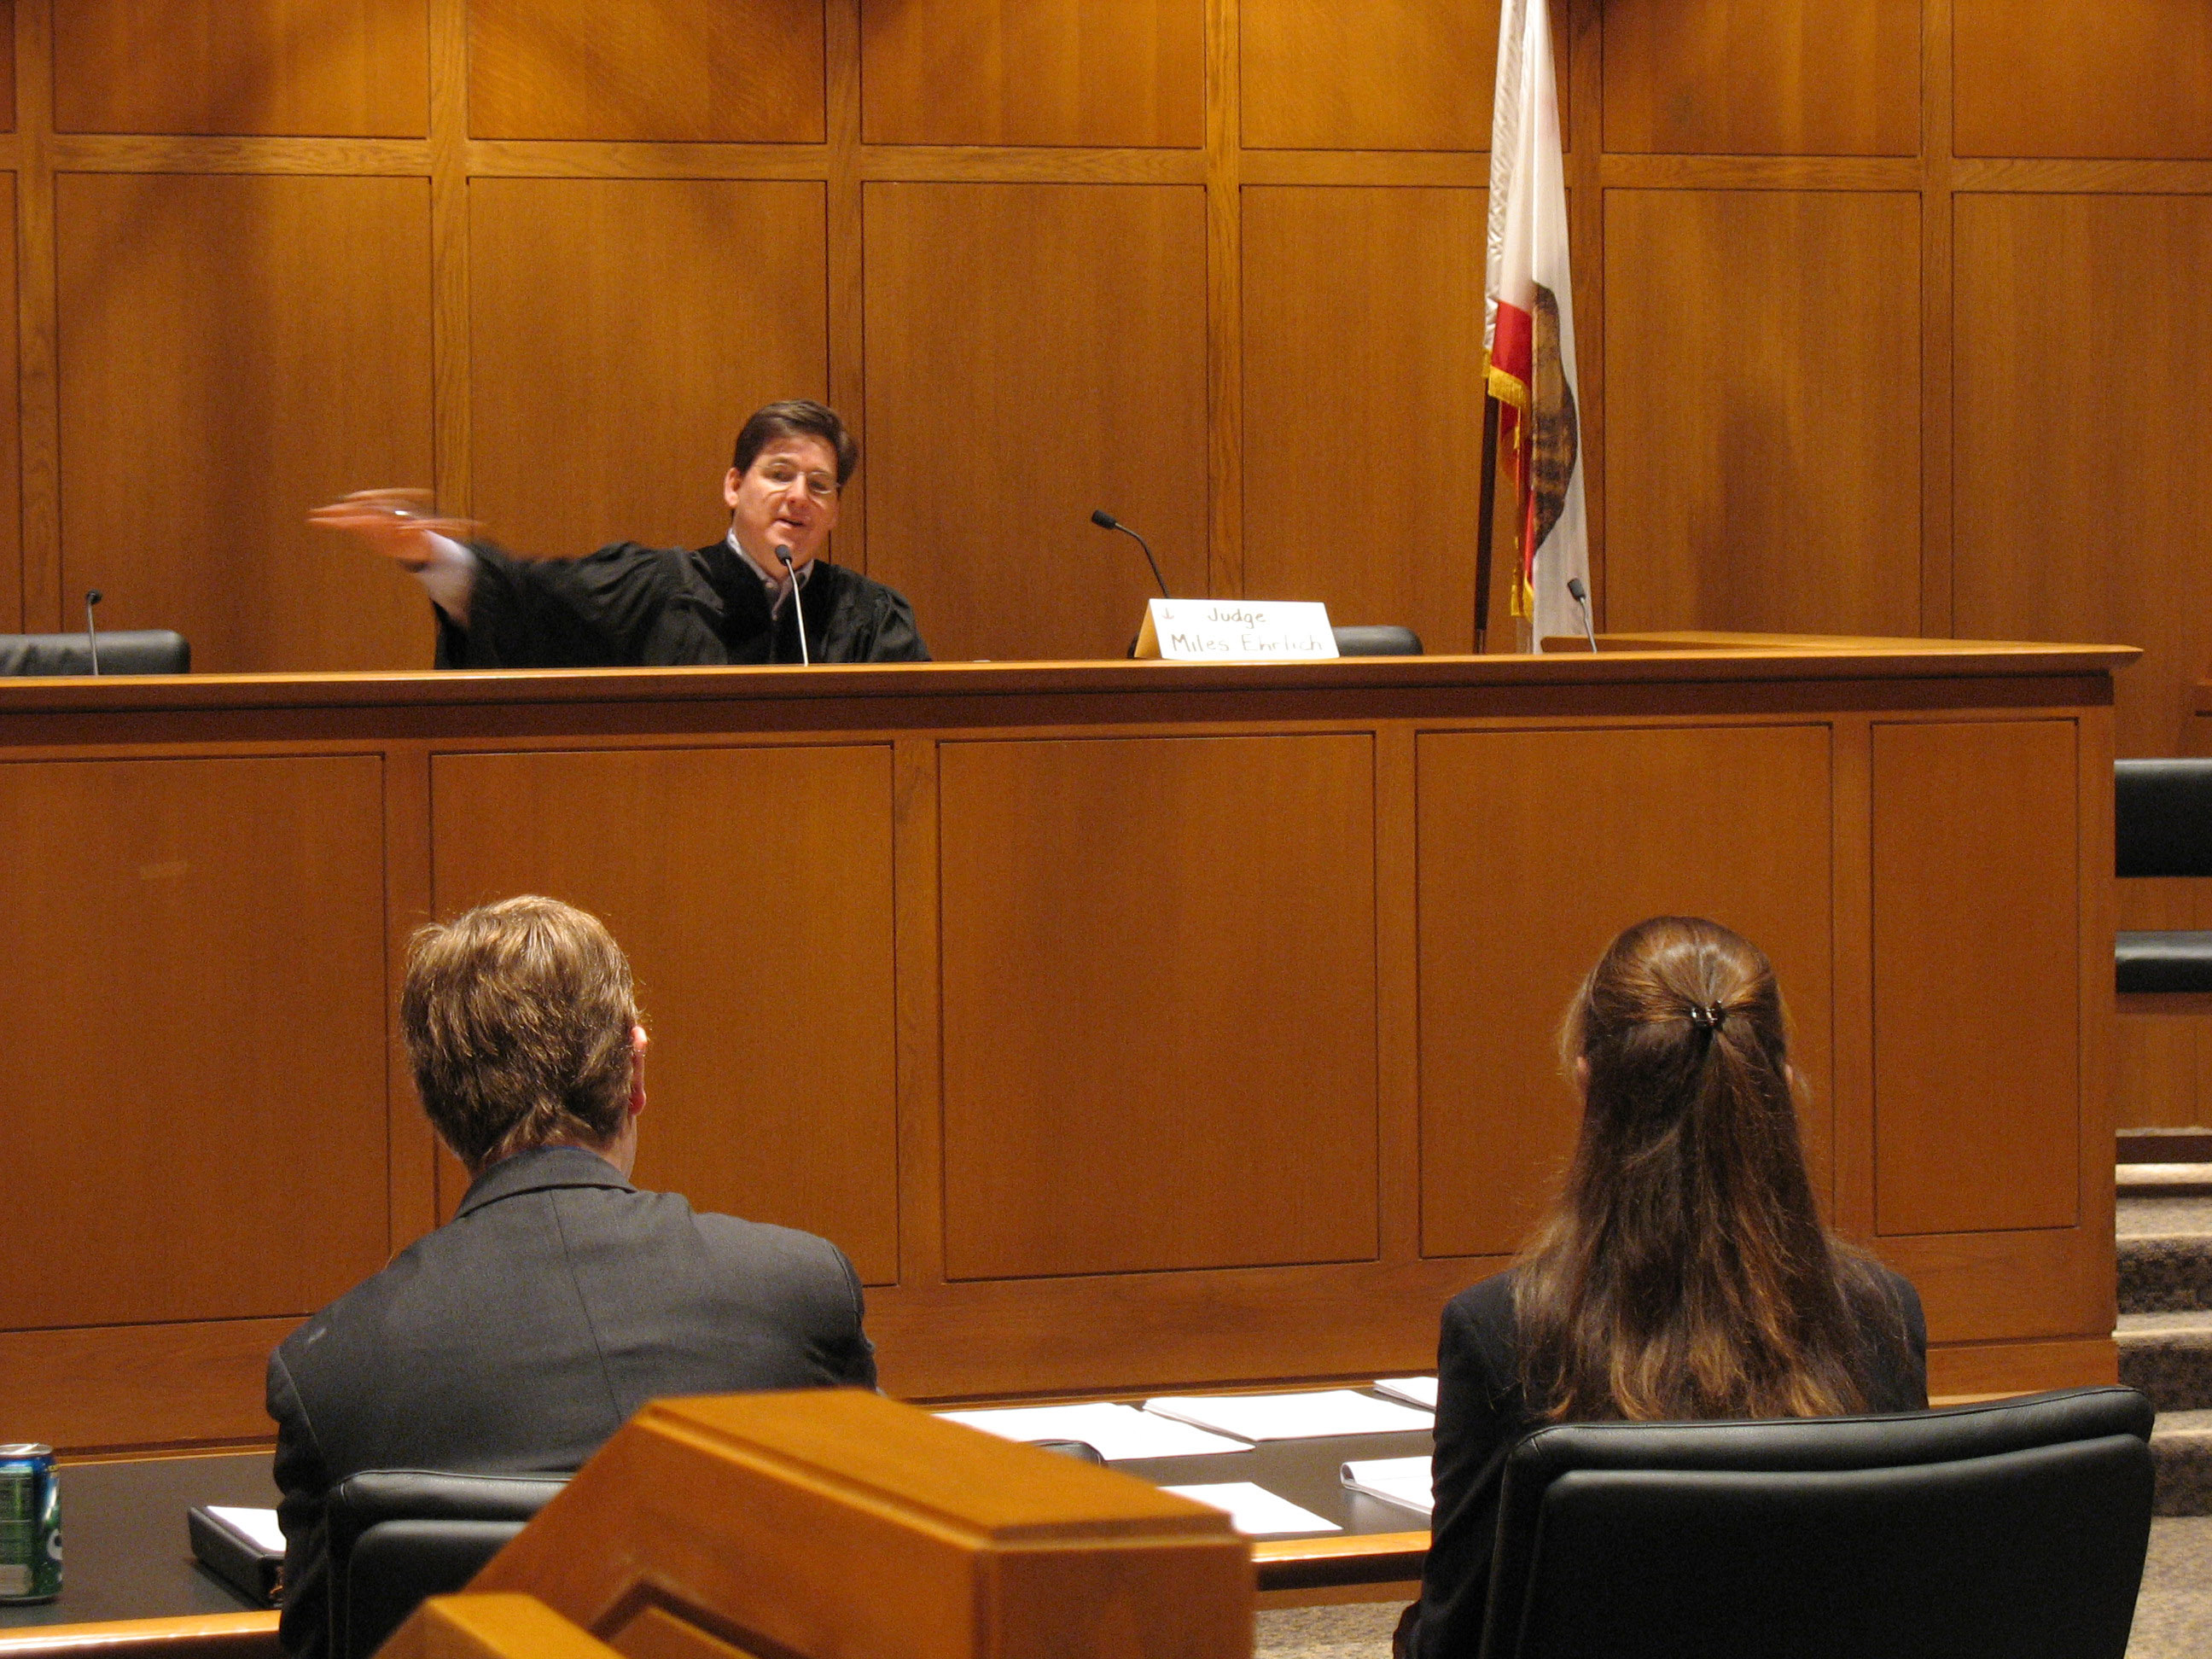 Miles Ehrlich, Judge, Credit: Wikimedia Commons